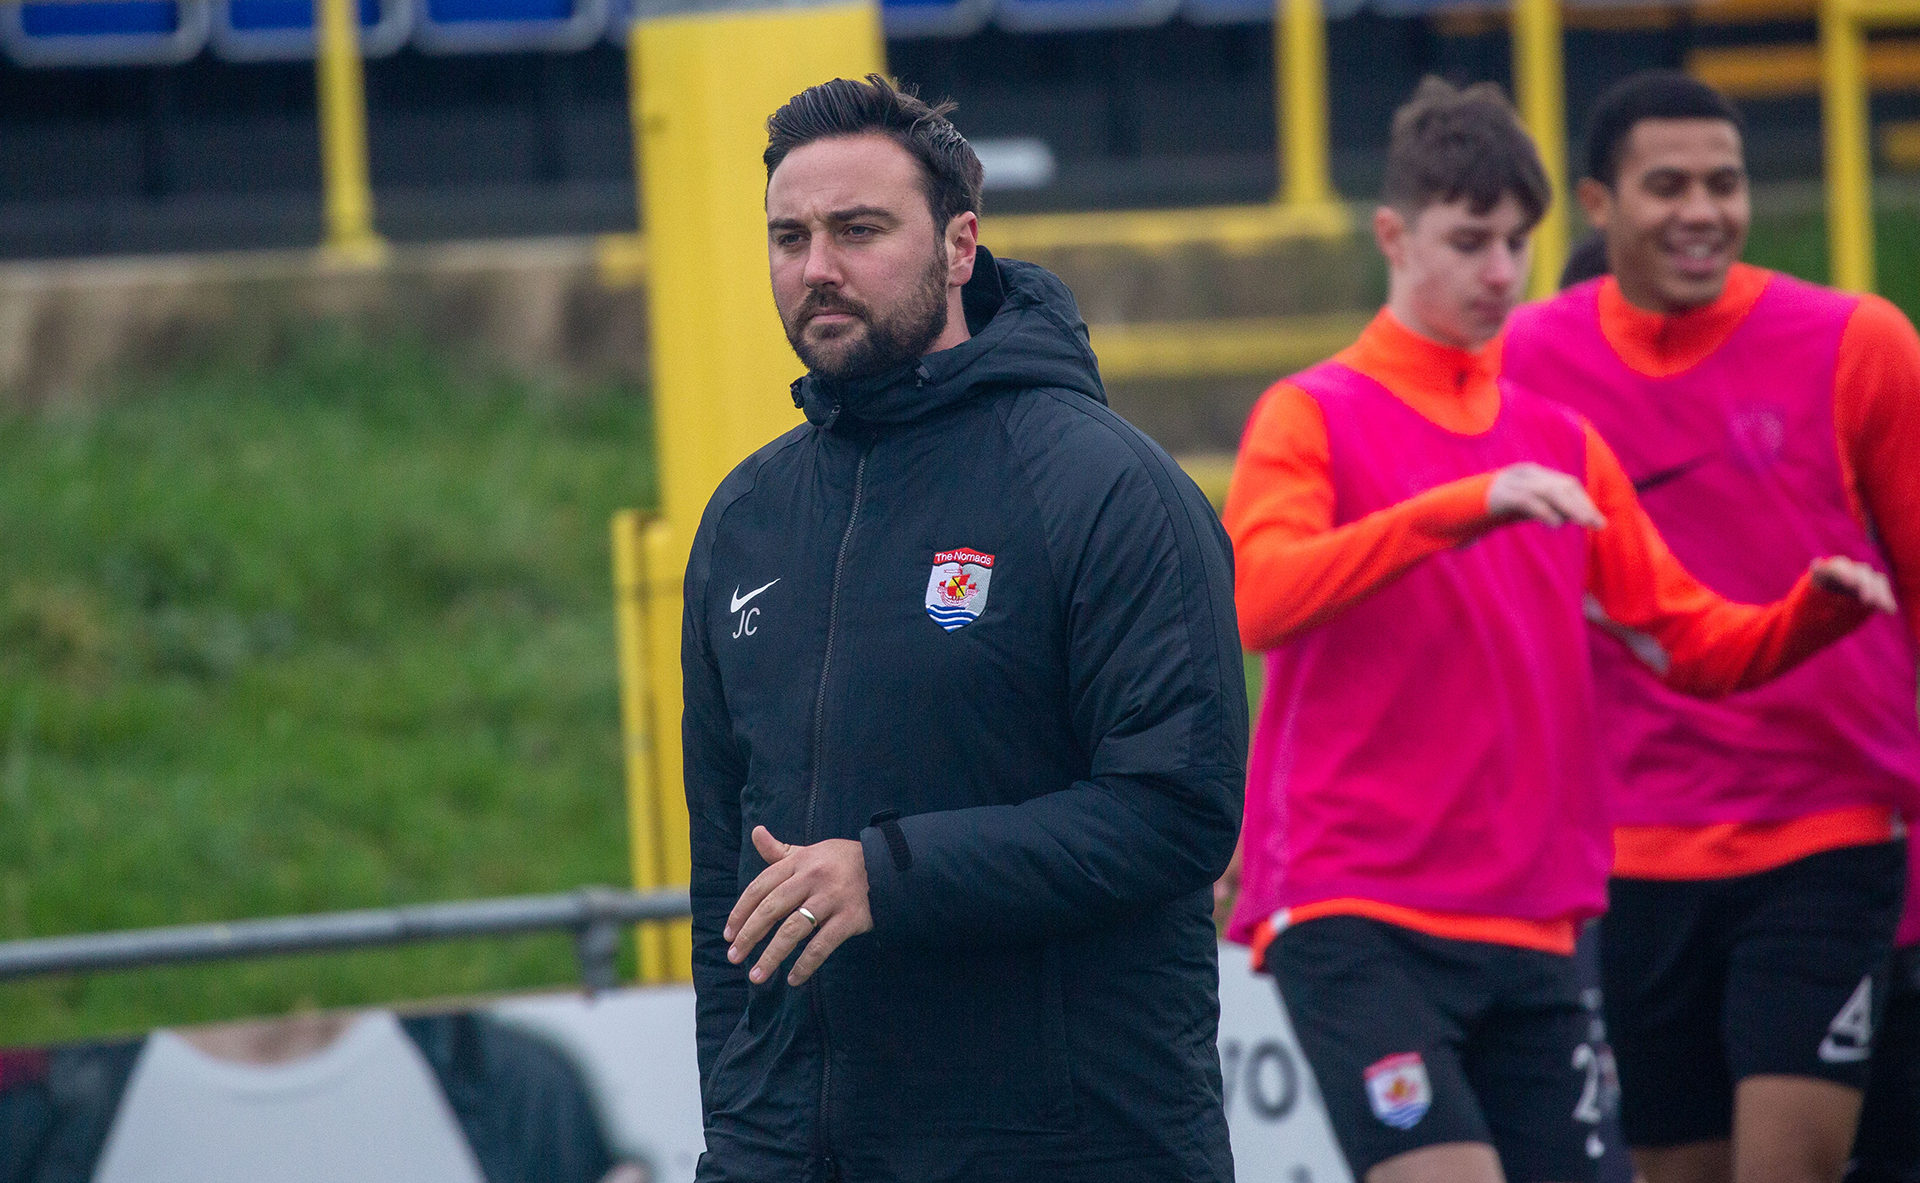 Jay Catton has signed a new three year deal at Connah's Quay Nomads | Photo: Tom Houghton